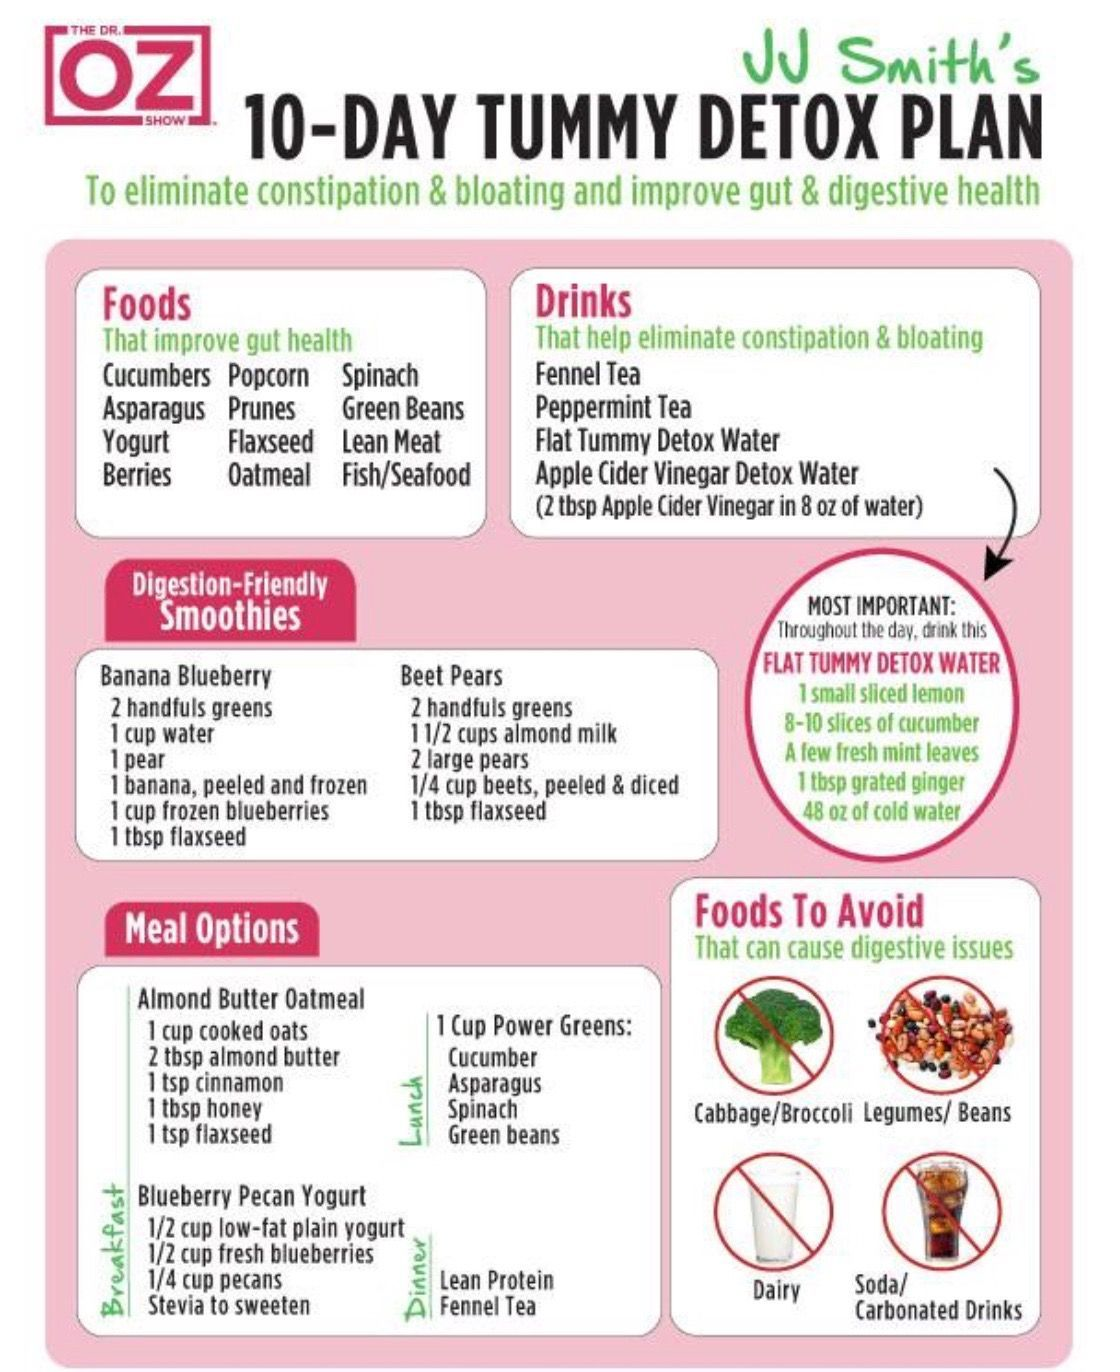 10 Day Cleanse, Juice Cleanse Detox, 10 Day Detox, Body Cleanse, Summer